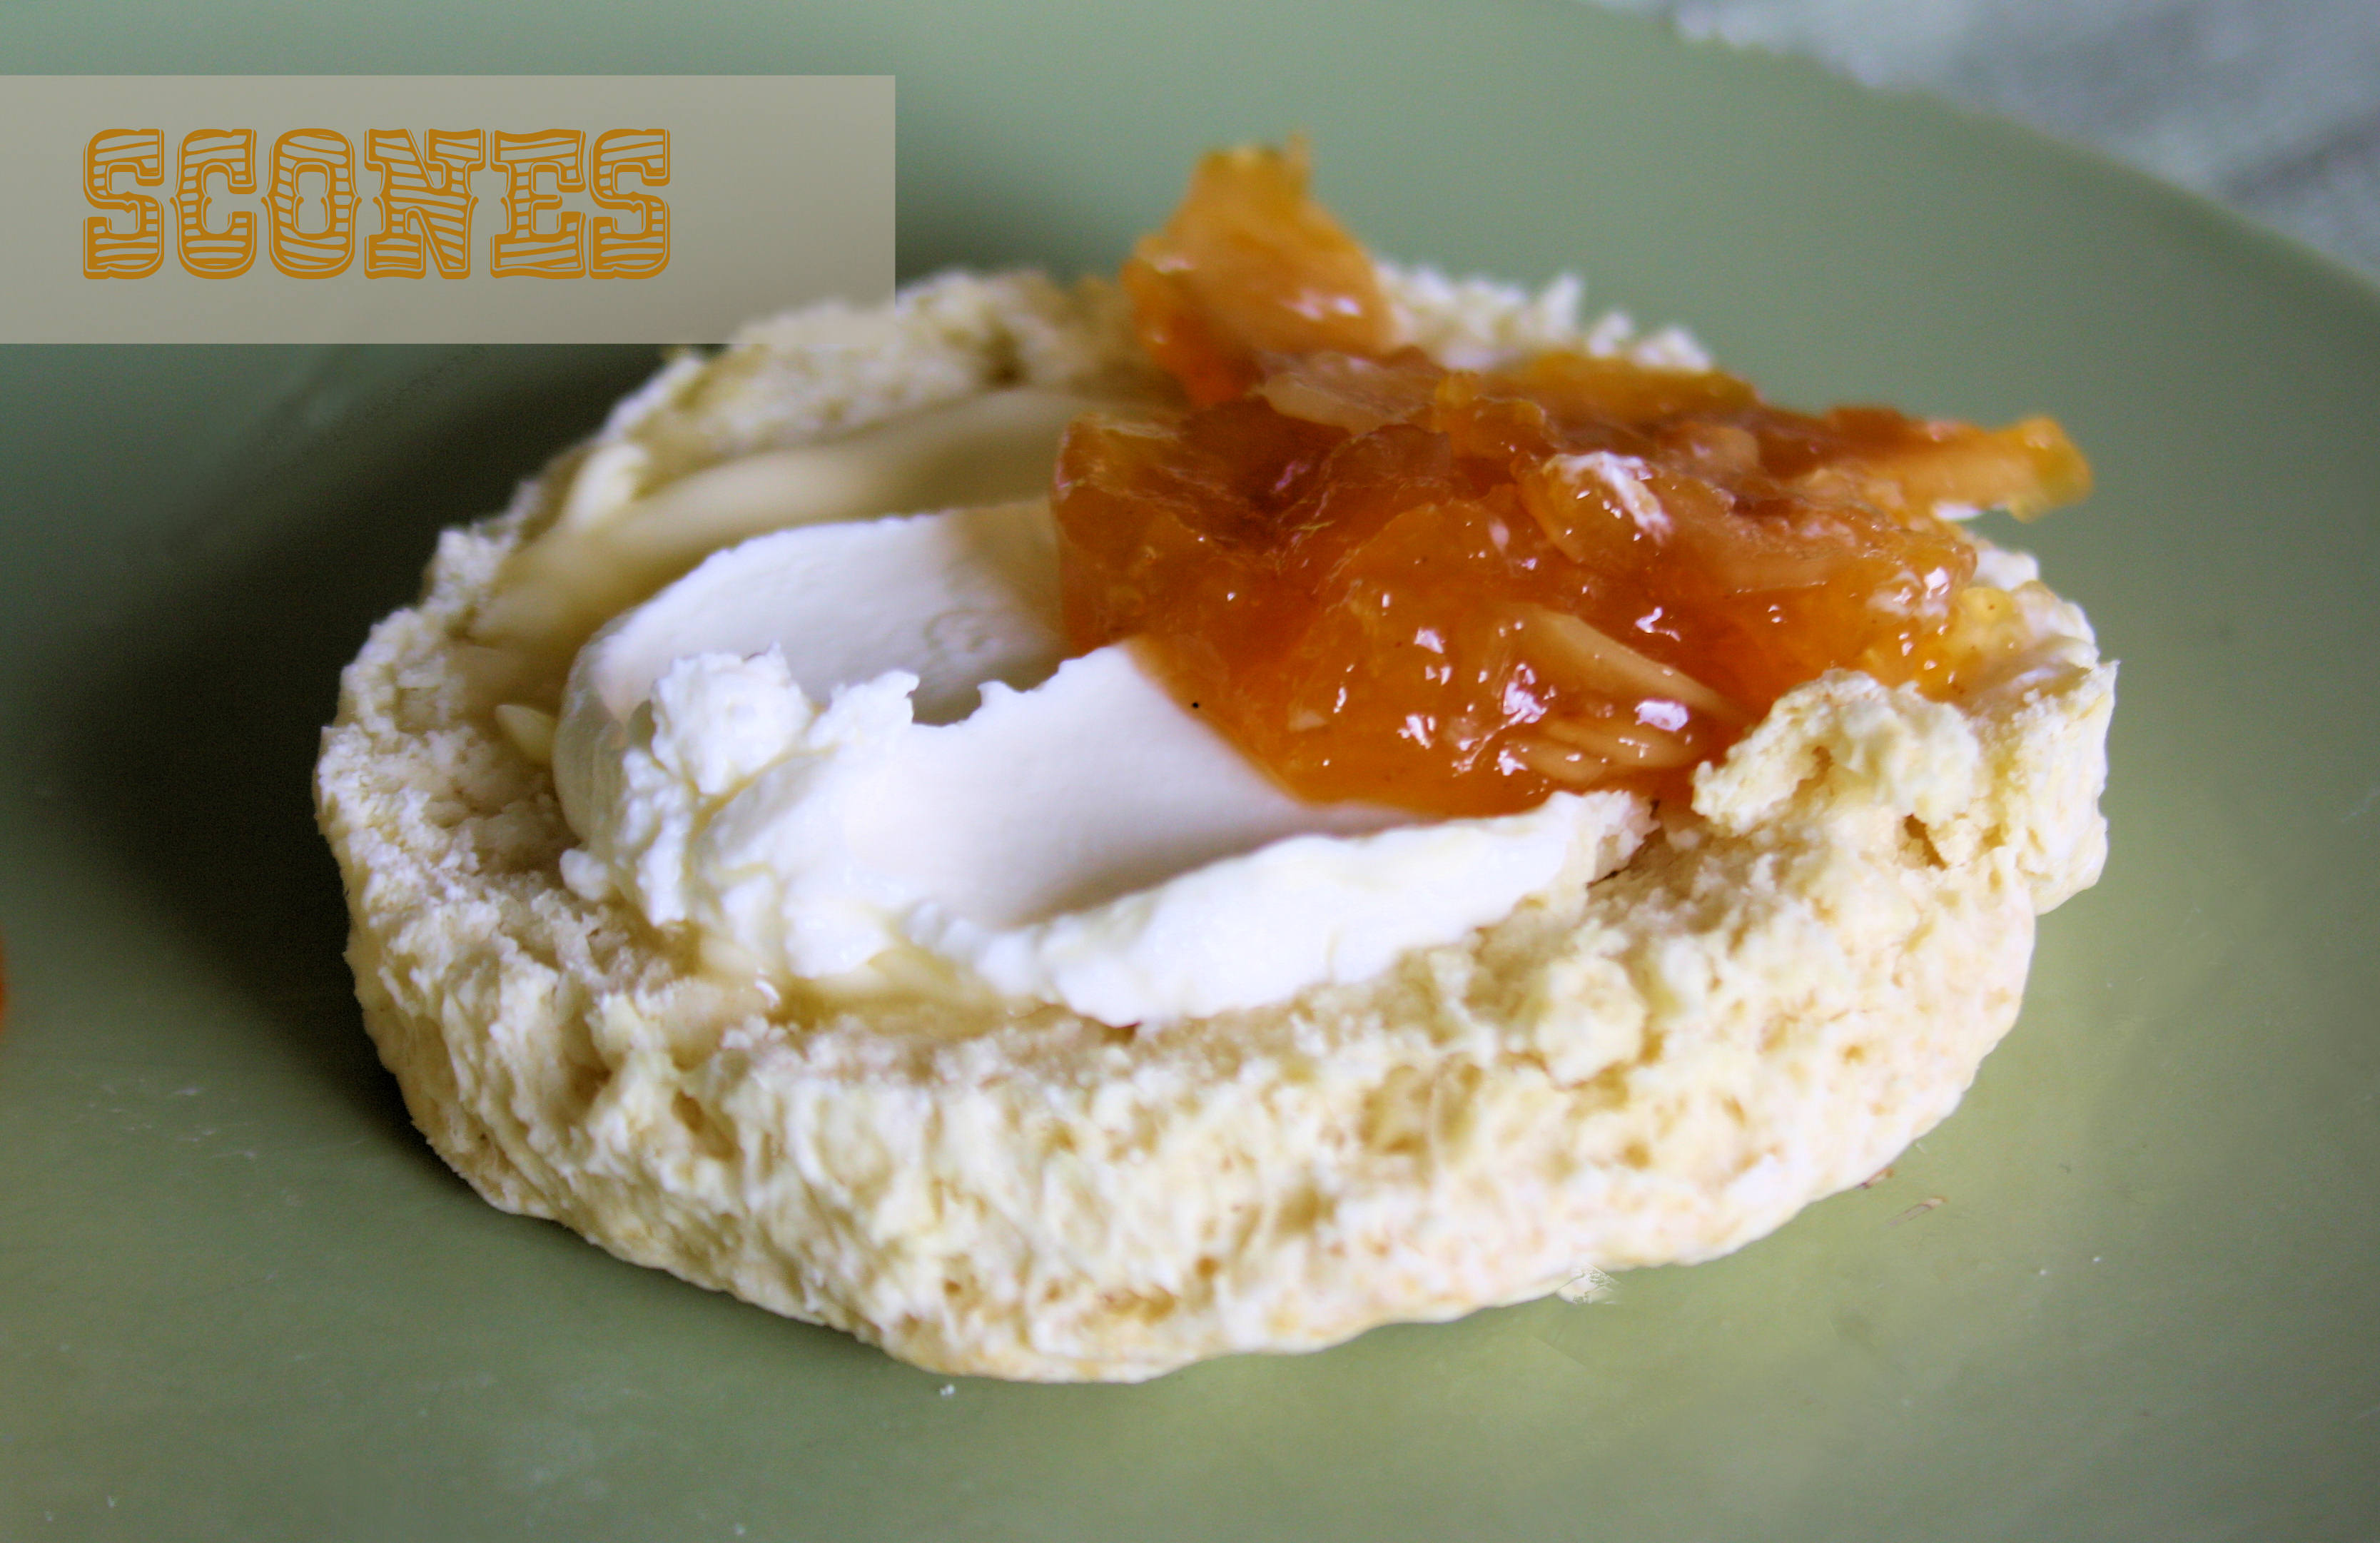 Frühstück mit Scones // http://babyrockmyday.com/get-in-the-mood-with-scones/